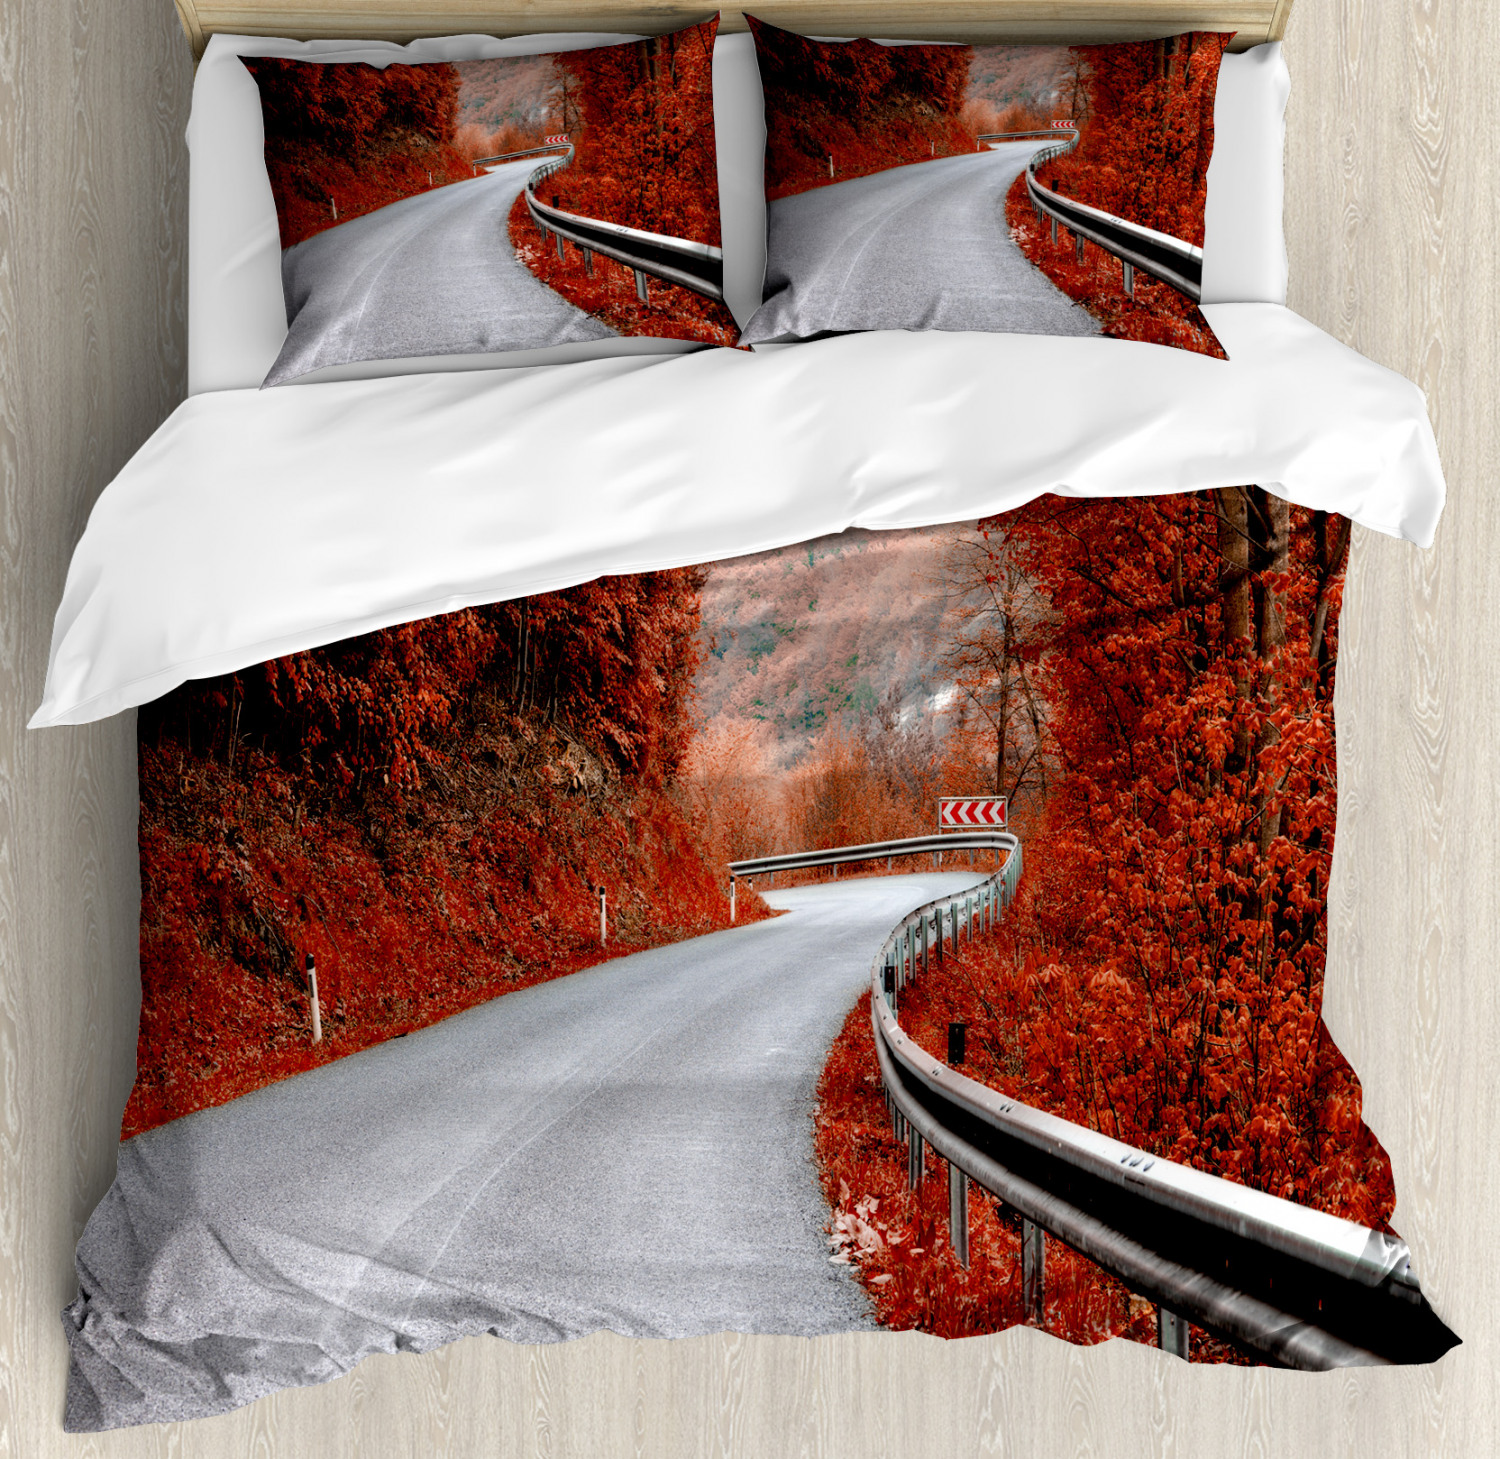 Fall Duvet Cover Set with Pillow Shams Dreamy Road Travel Theme Print